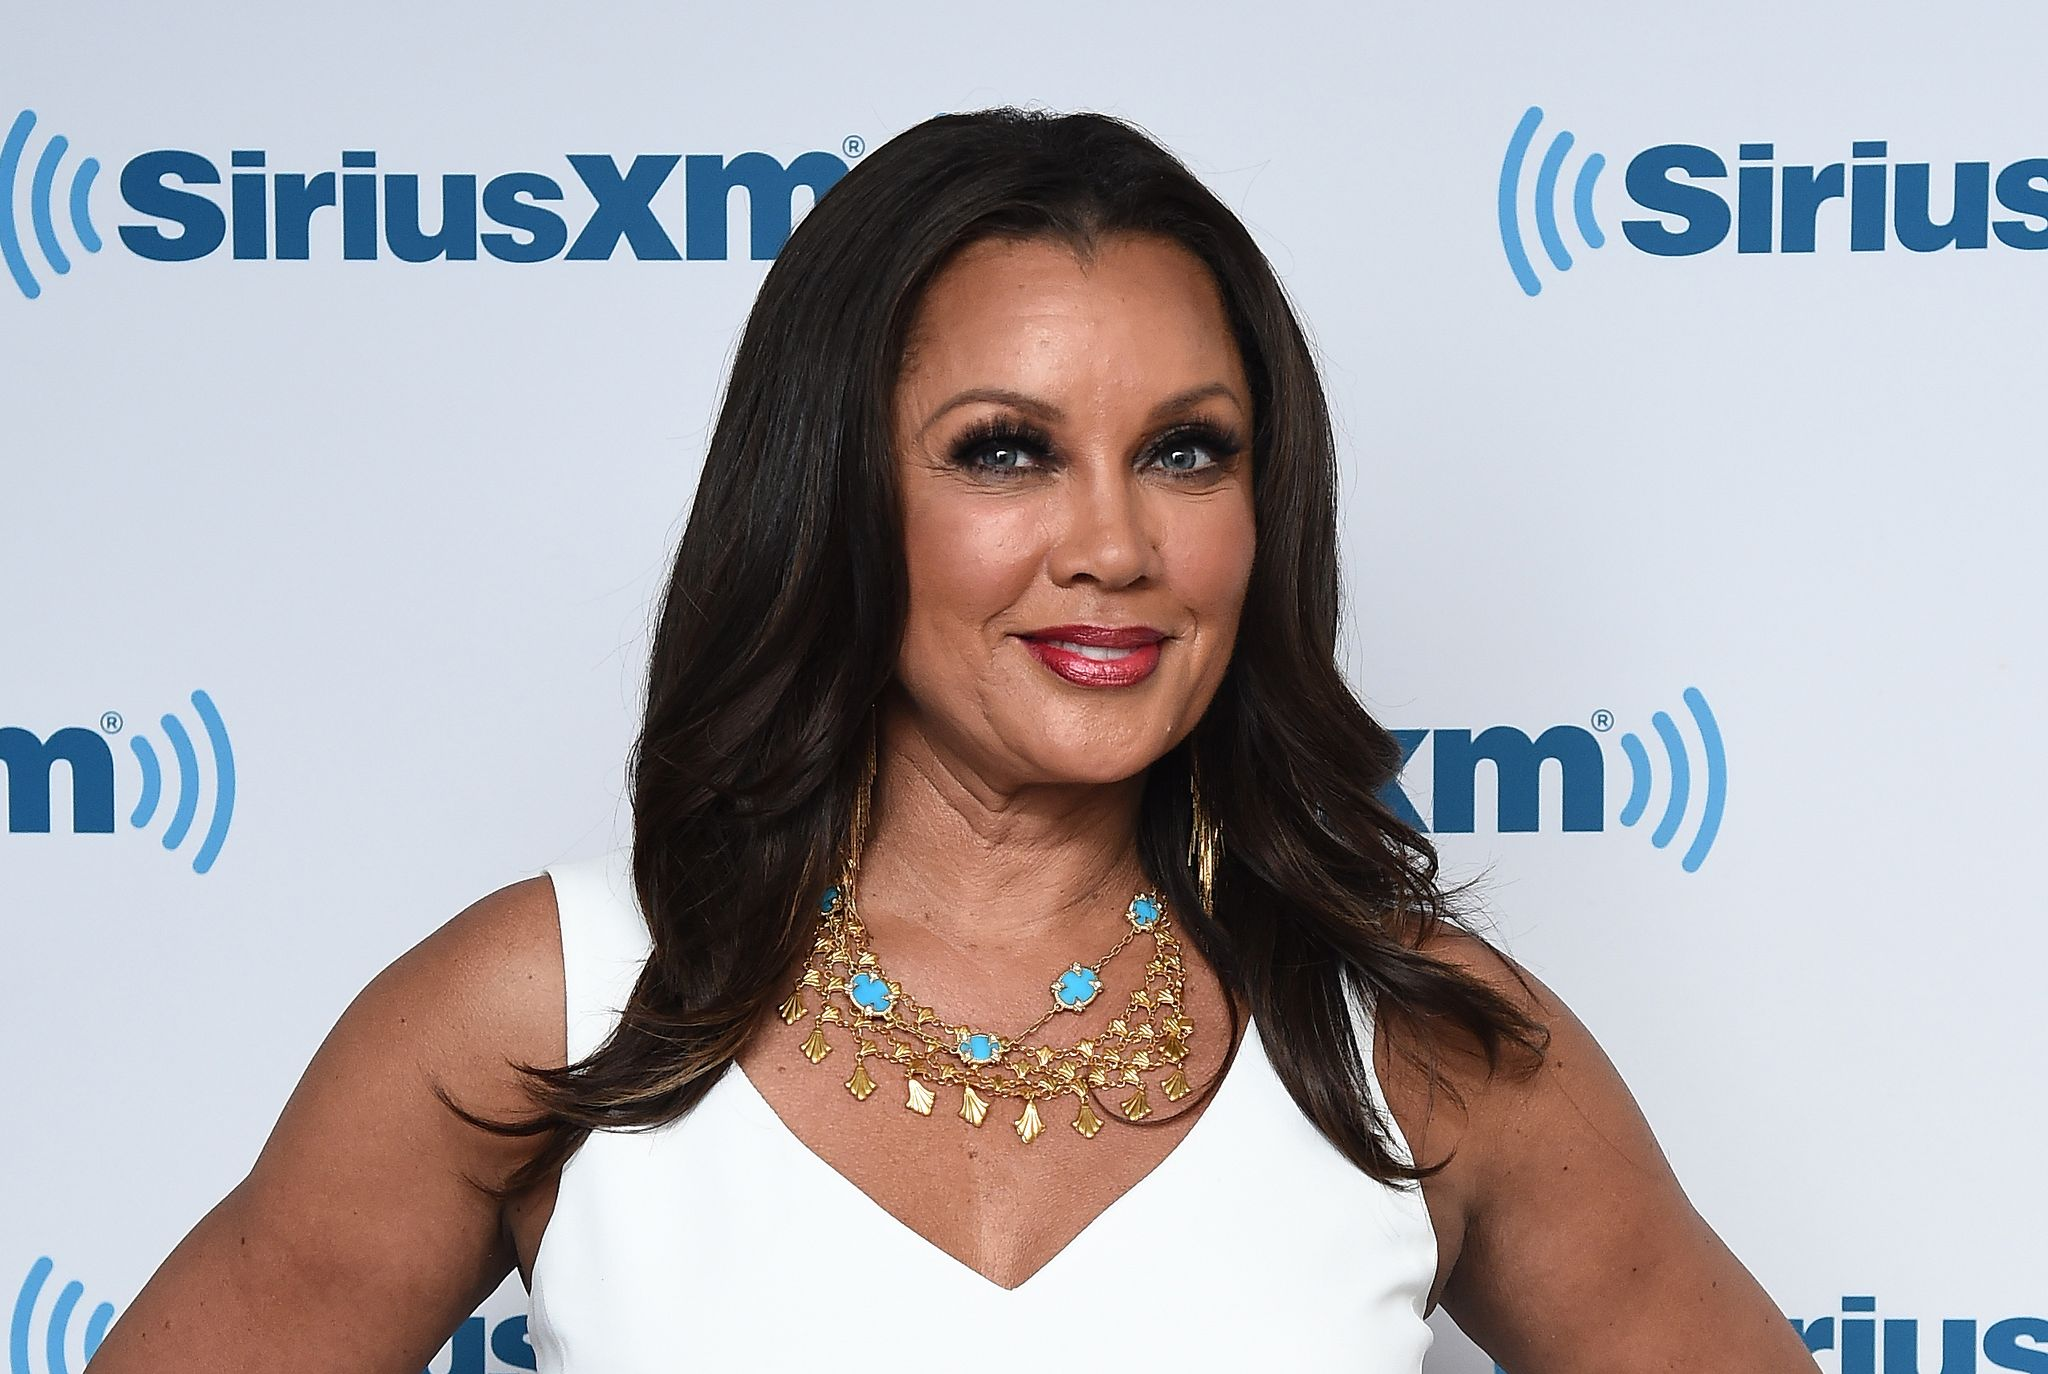 Actress Vanessa Williams at the SiriusXM Studios on May 31, 2017 in New York. | Photo: Getty Images